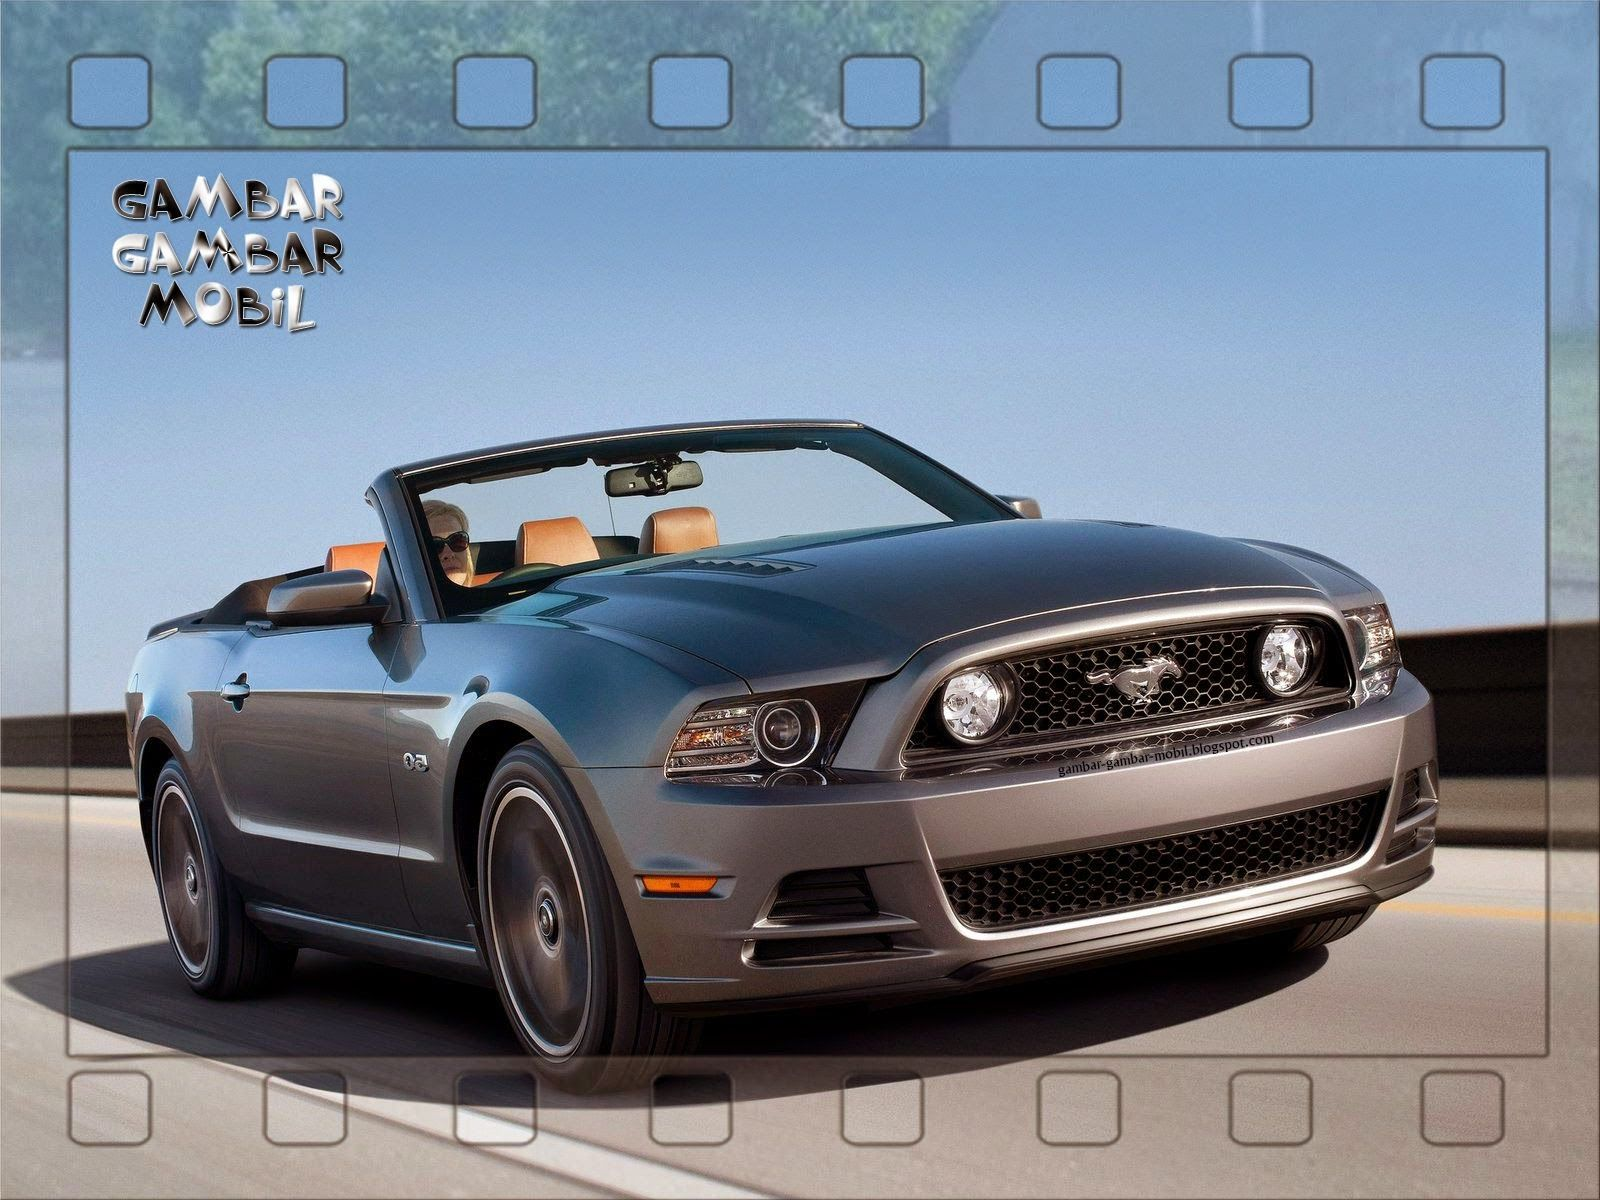 Gambar Mobil Mustang Gt Ford Pinterest Ford And Ford Mustang